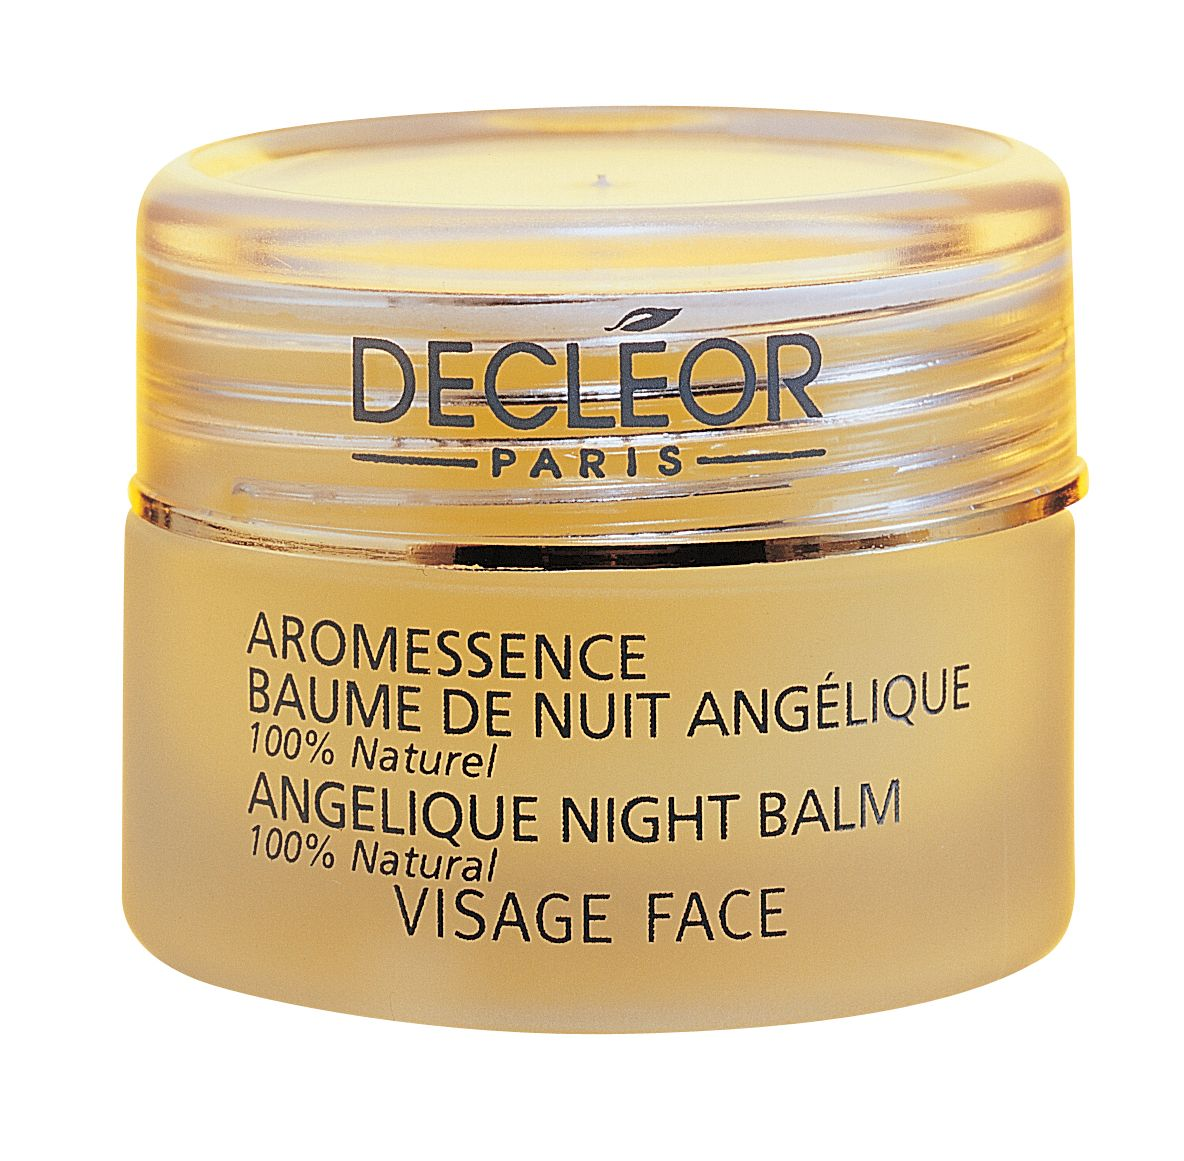 Decleor 15ml aromessence angelique night balm